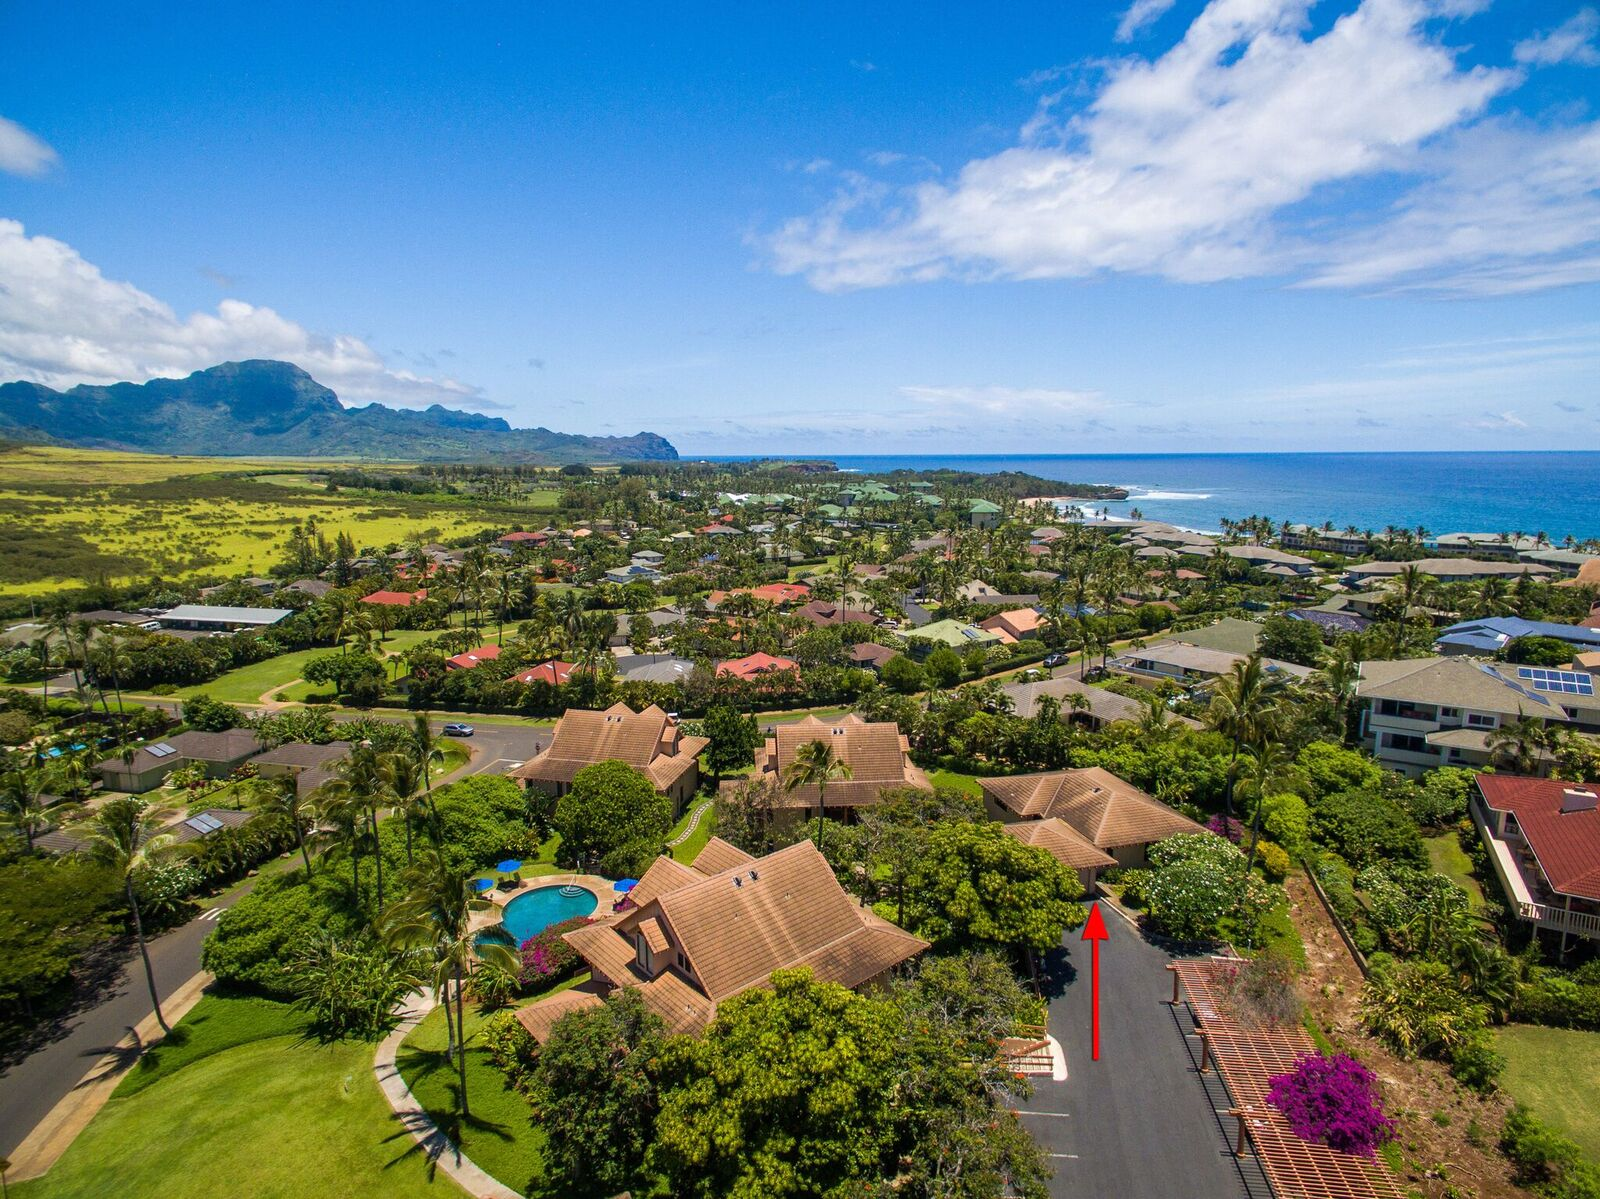 コンドミニアム のために 売買 アット Rare and Completely Detached Condominium with Two Car Garage in Koloa, Kauai 2370 Ho'ohu Road #311, Koloa, ハワイ, 96756 アメリカ合衆国